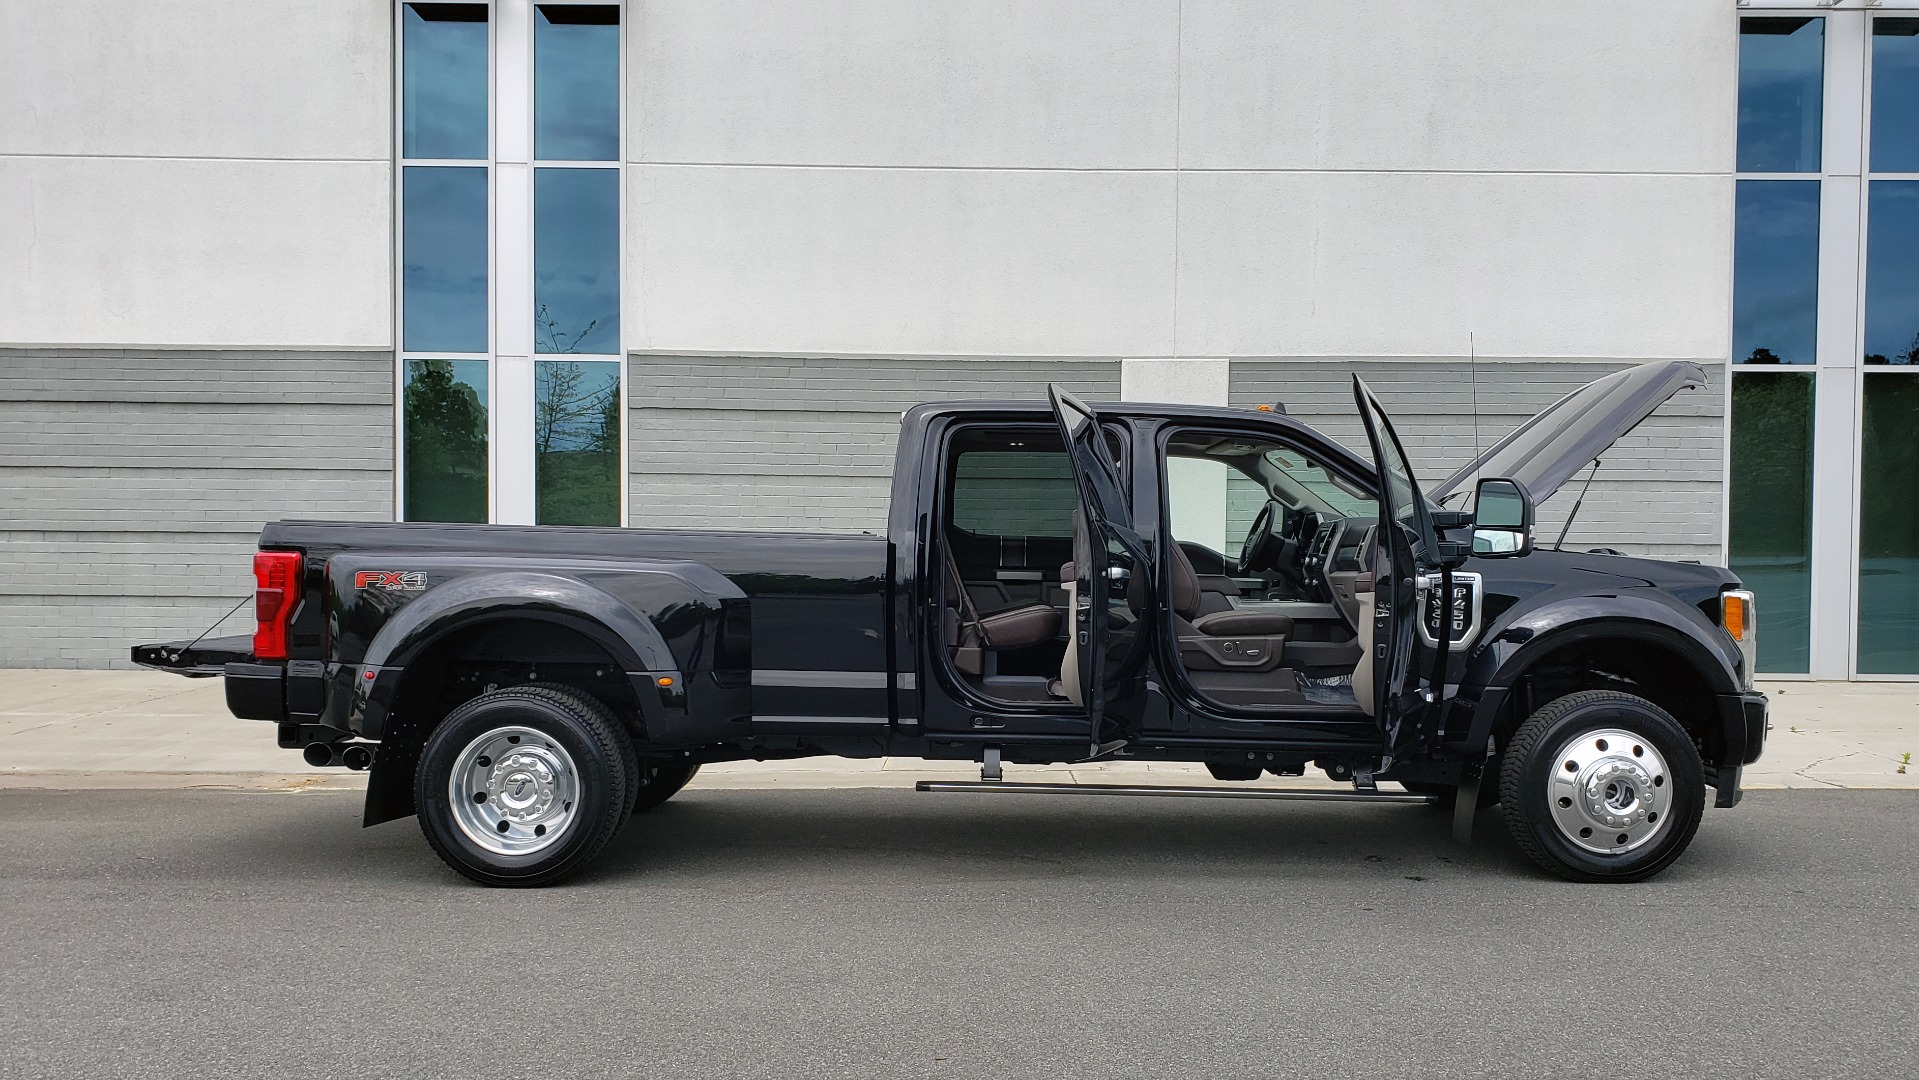 Used 2019 Ford SUPER DUTY F-450 DRW LIMITED / 4X4 / CREWCAB 176IN WB / LOADED / LOW MILES for sale Sold at Formula Imports in Charlotte NC 28227 15